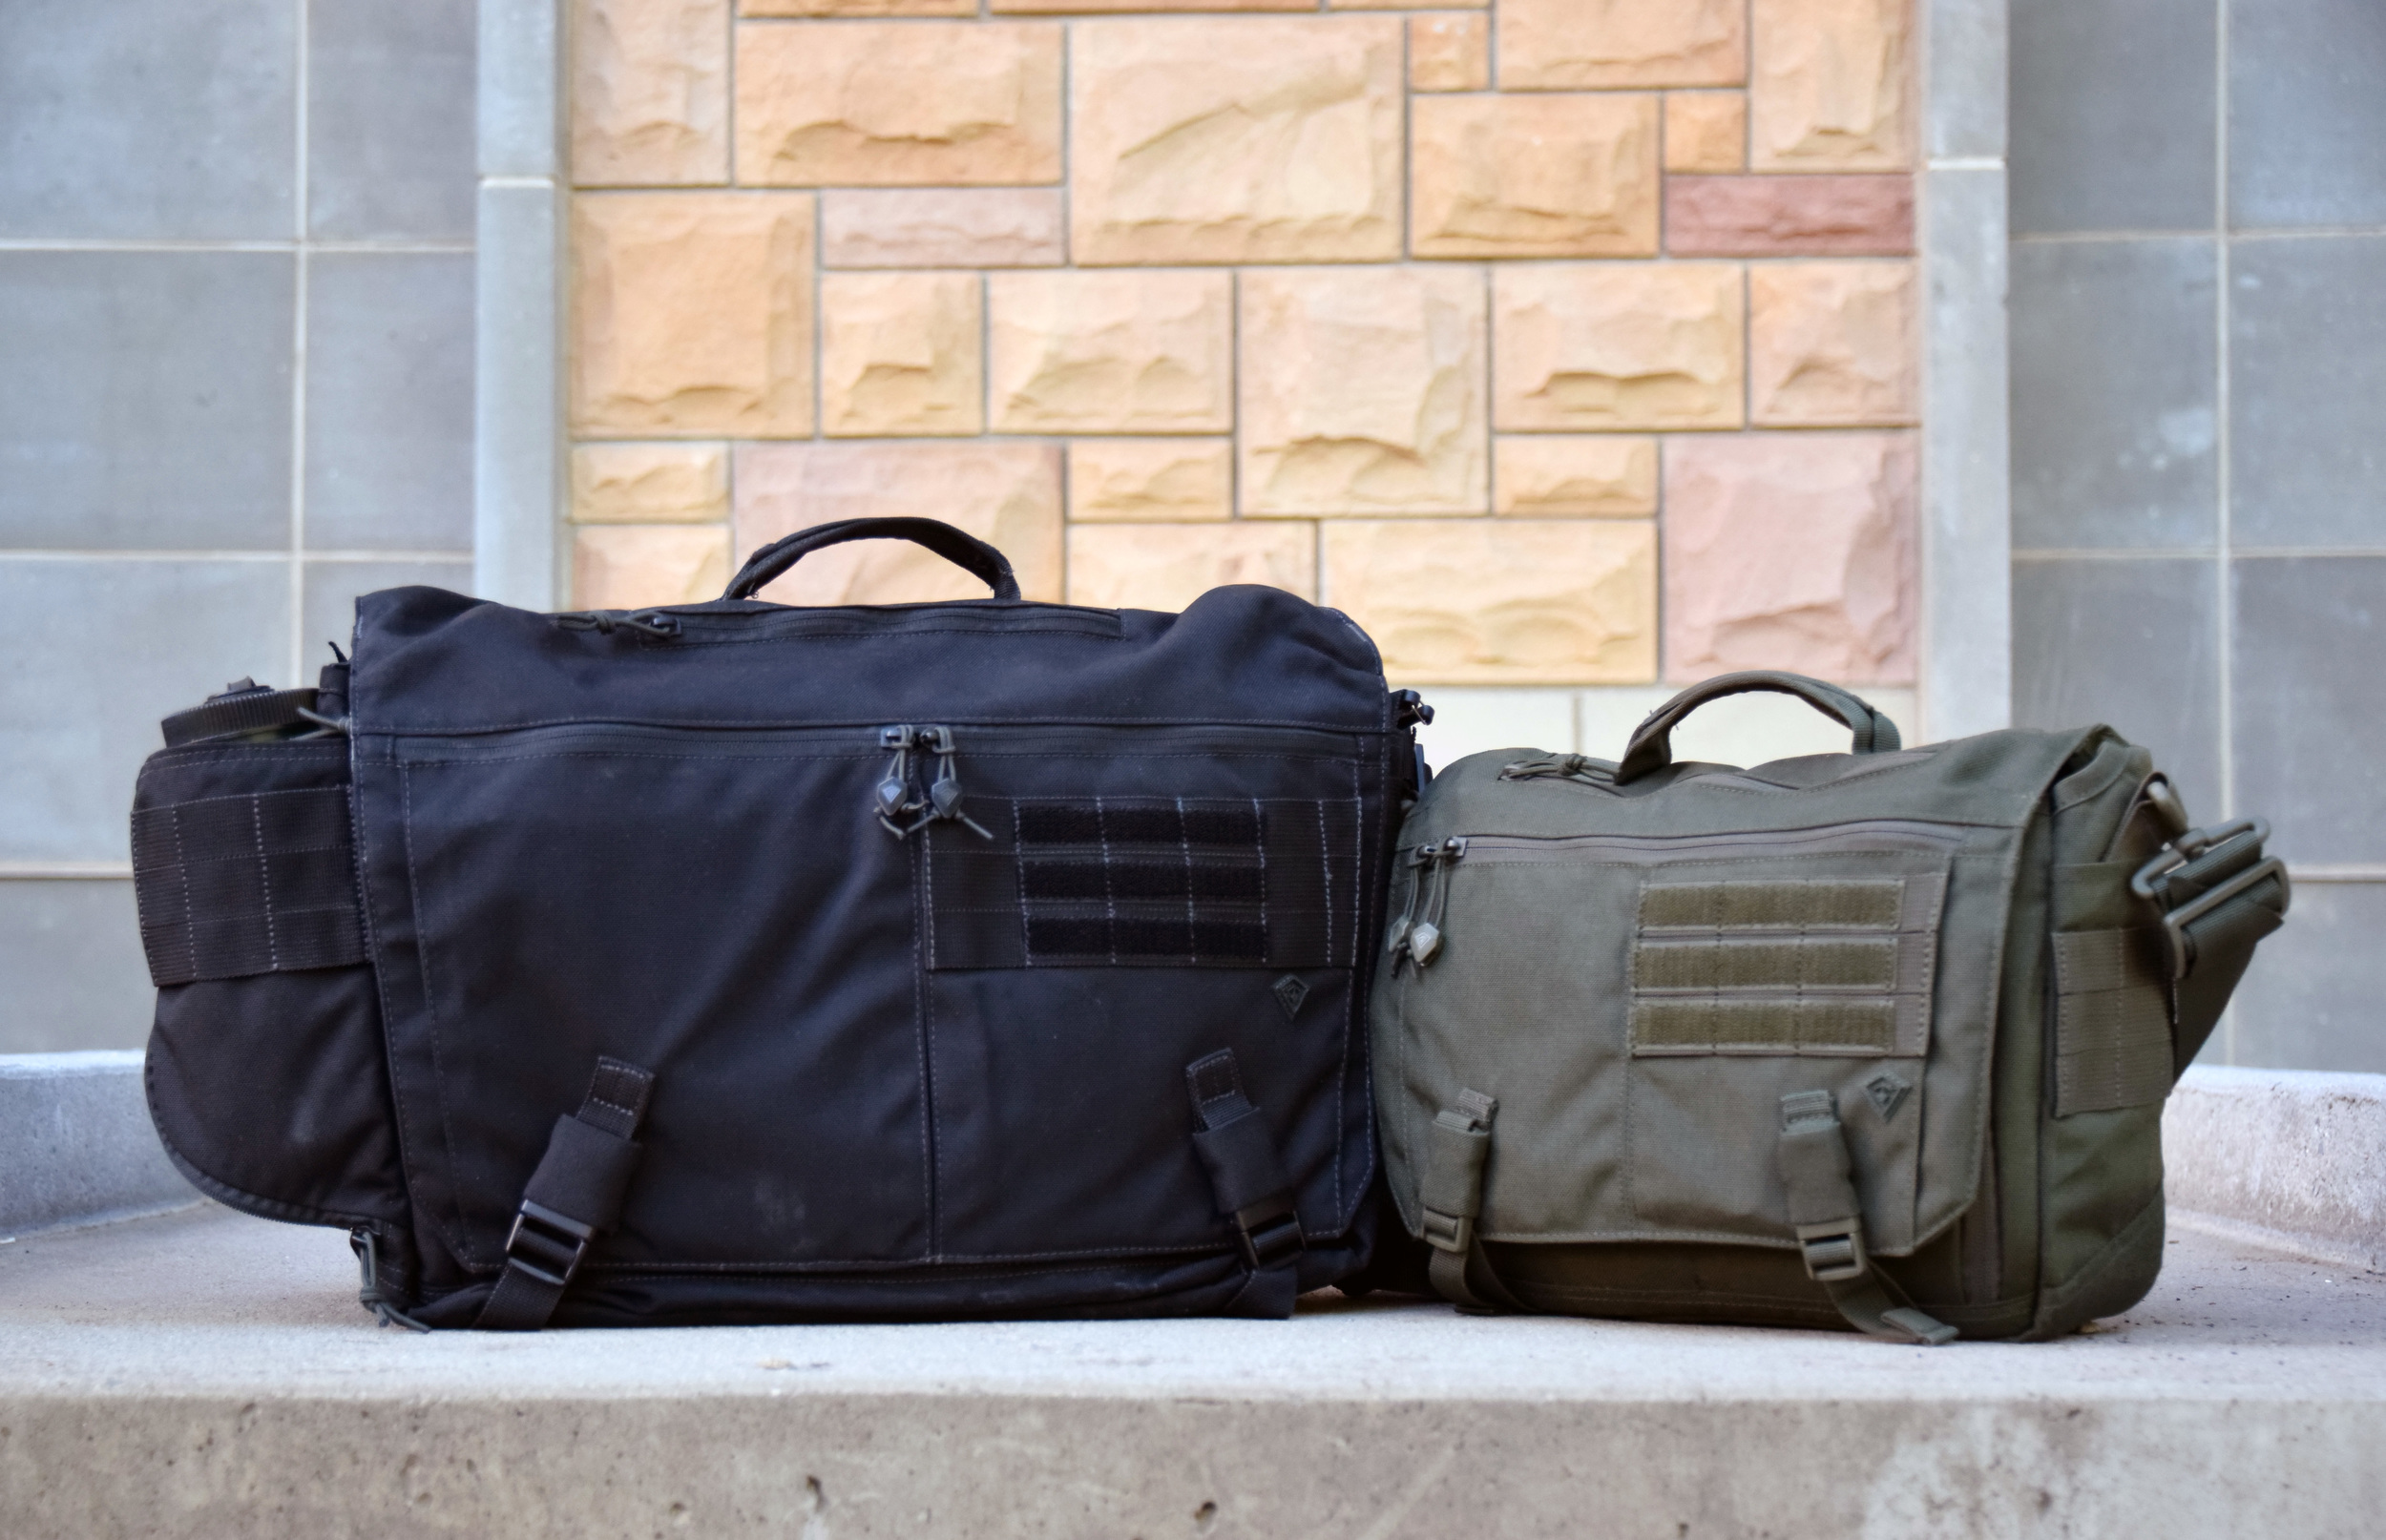 Two of a kind: The First Tactical Ascend Messenger Bag (Left) and the First Tactical Summit Side Satchel (Right).